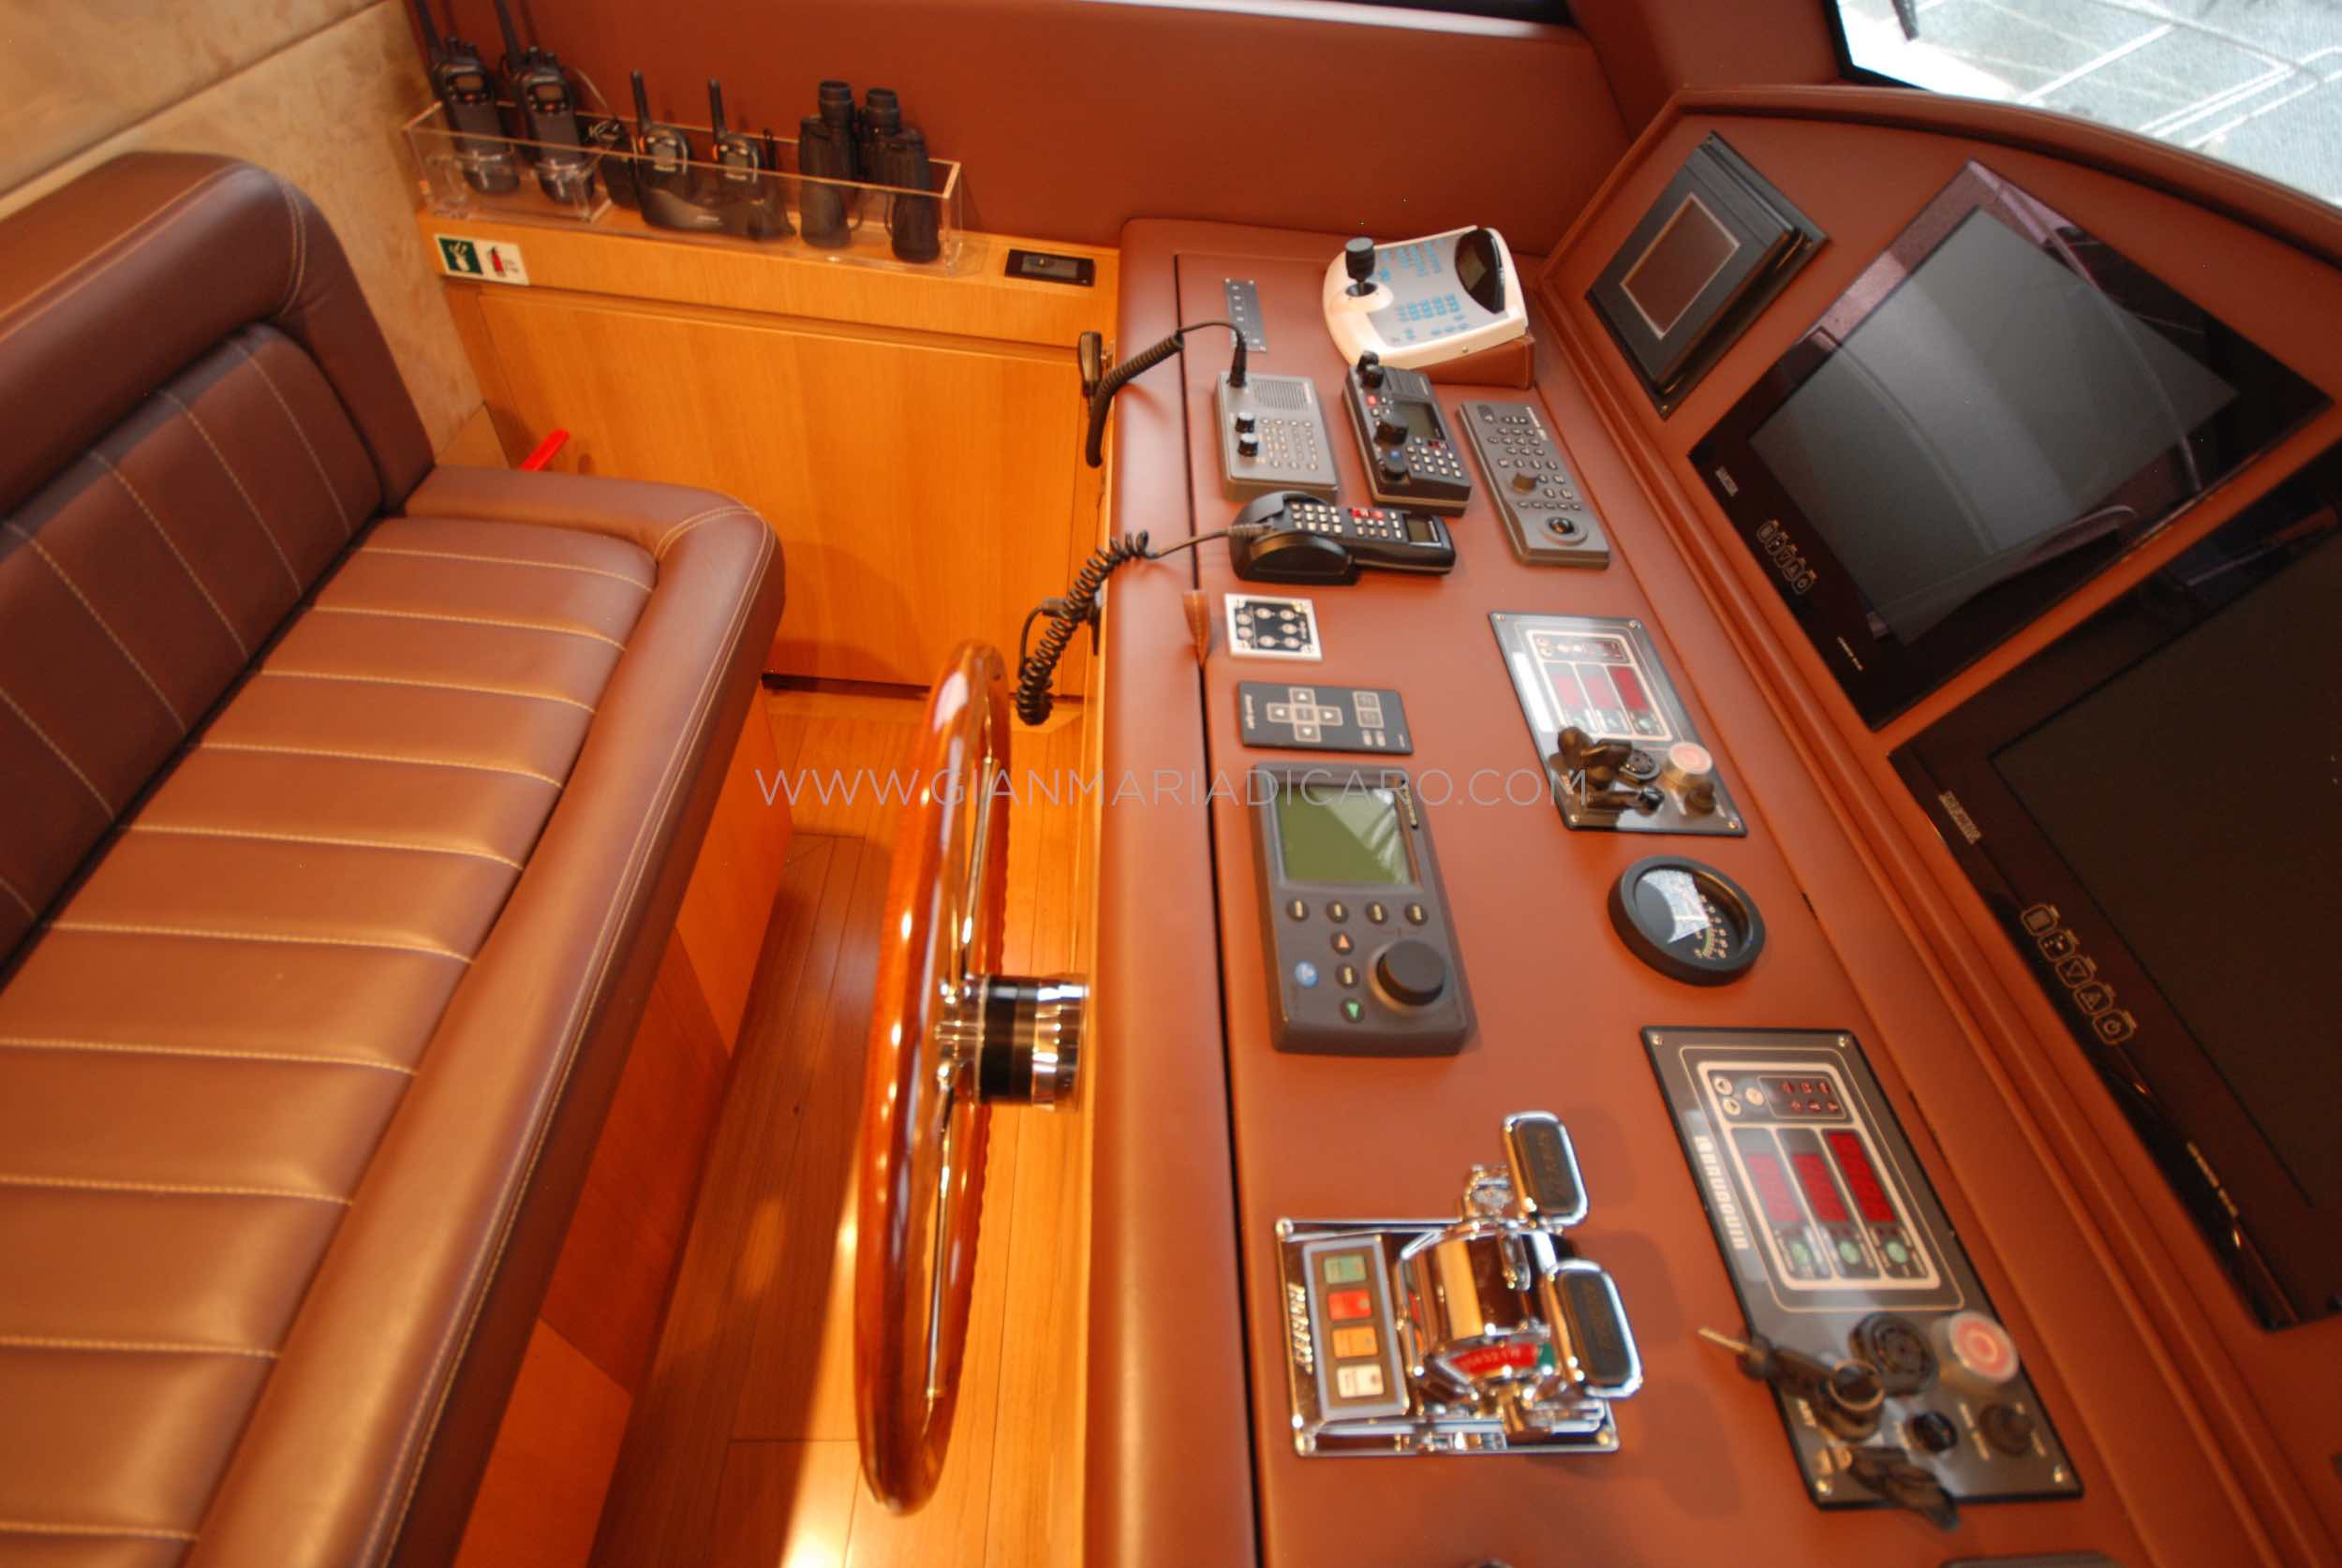 emys-yacht-22-unica-for-sale-153.jpg